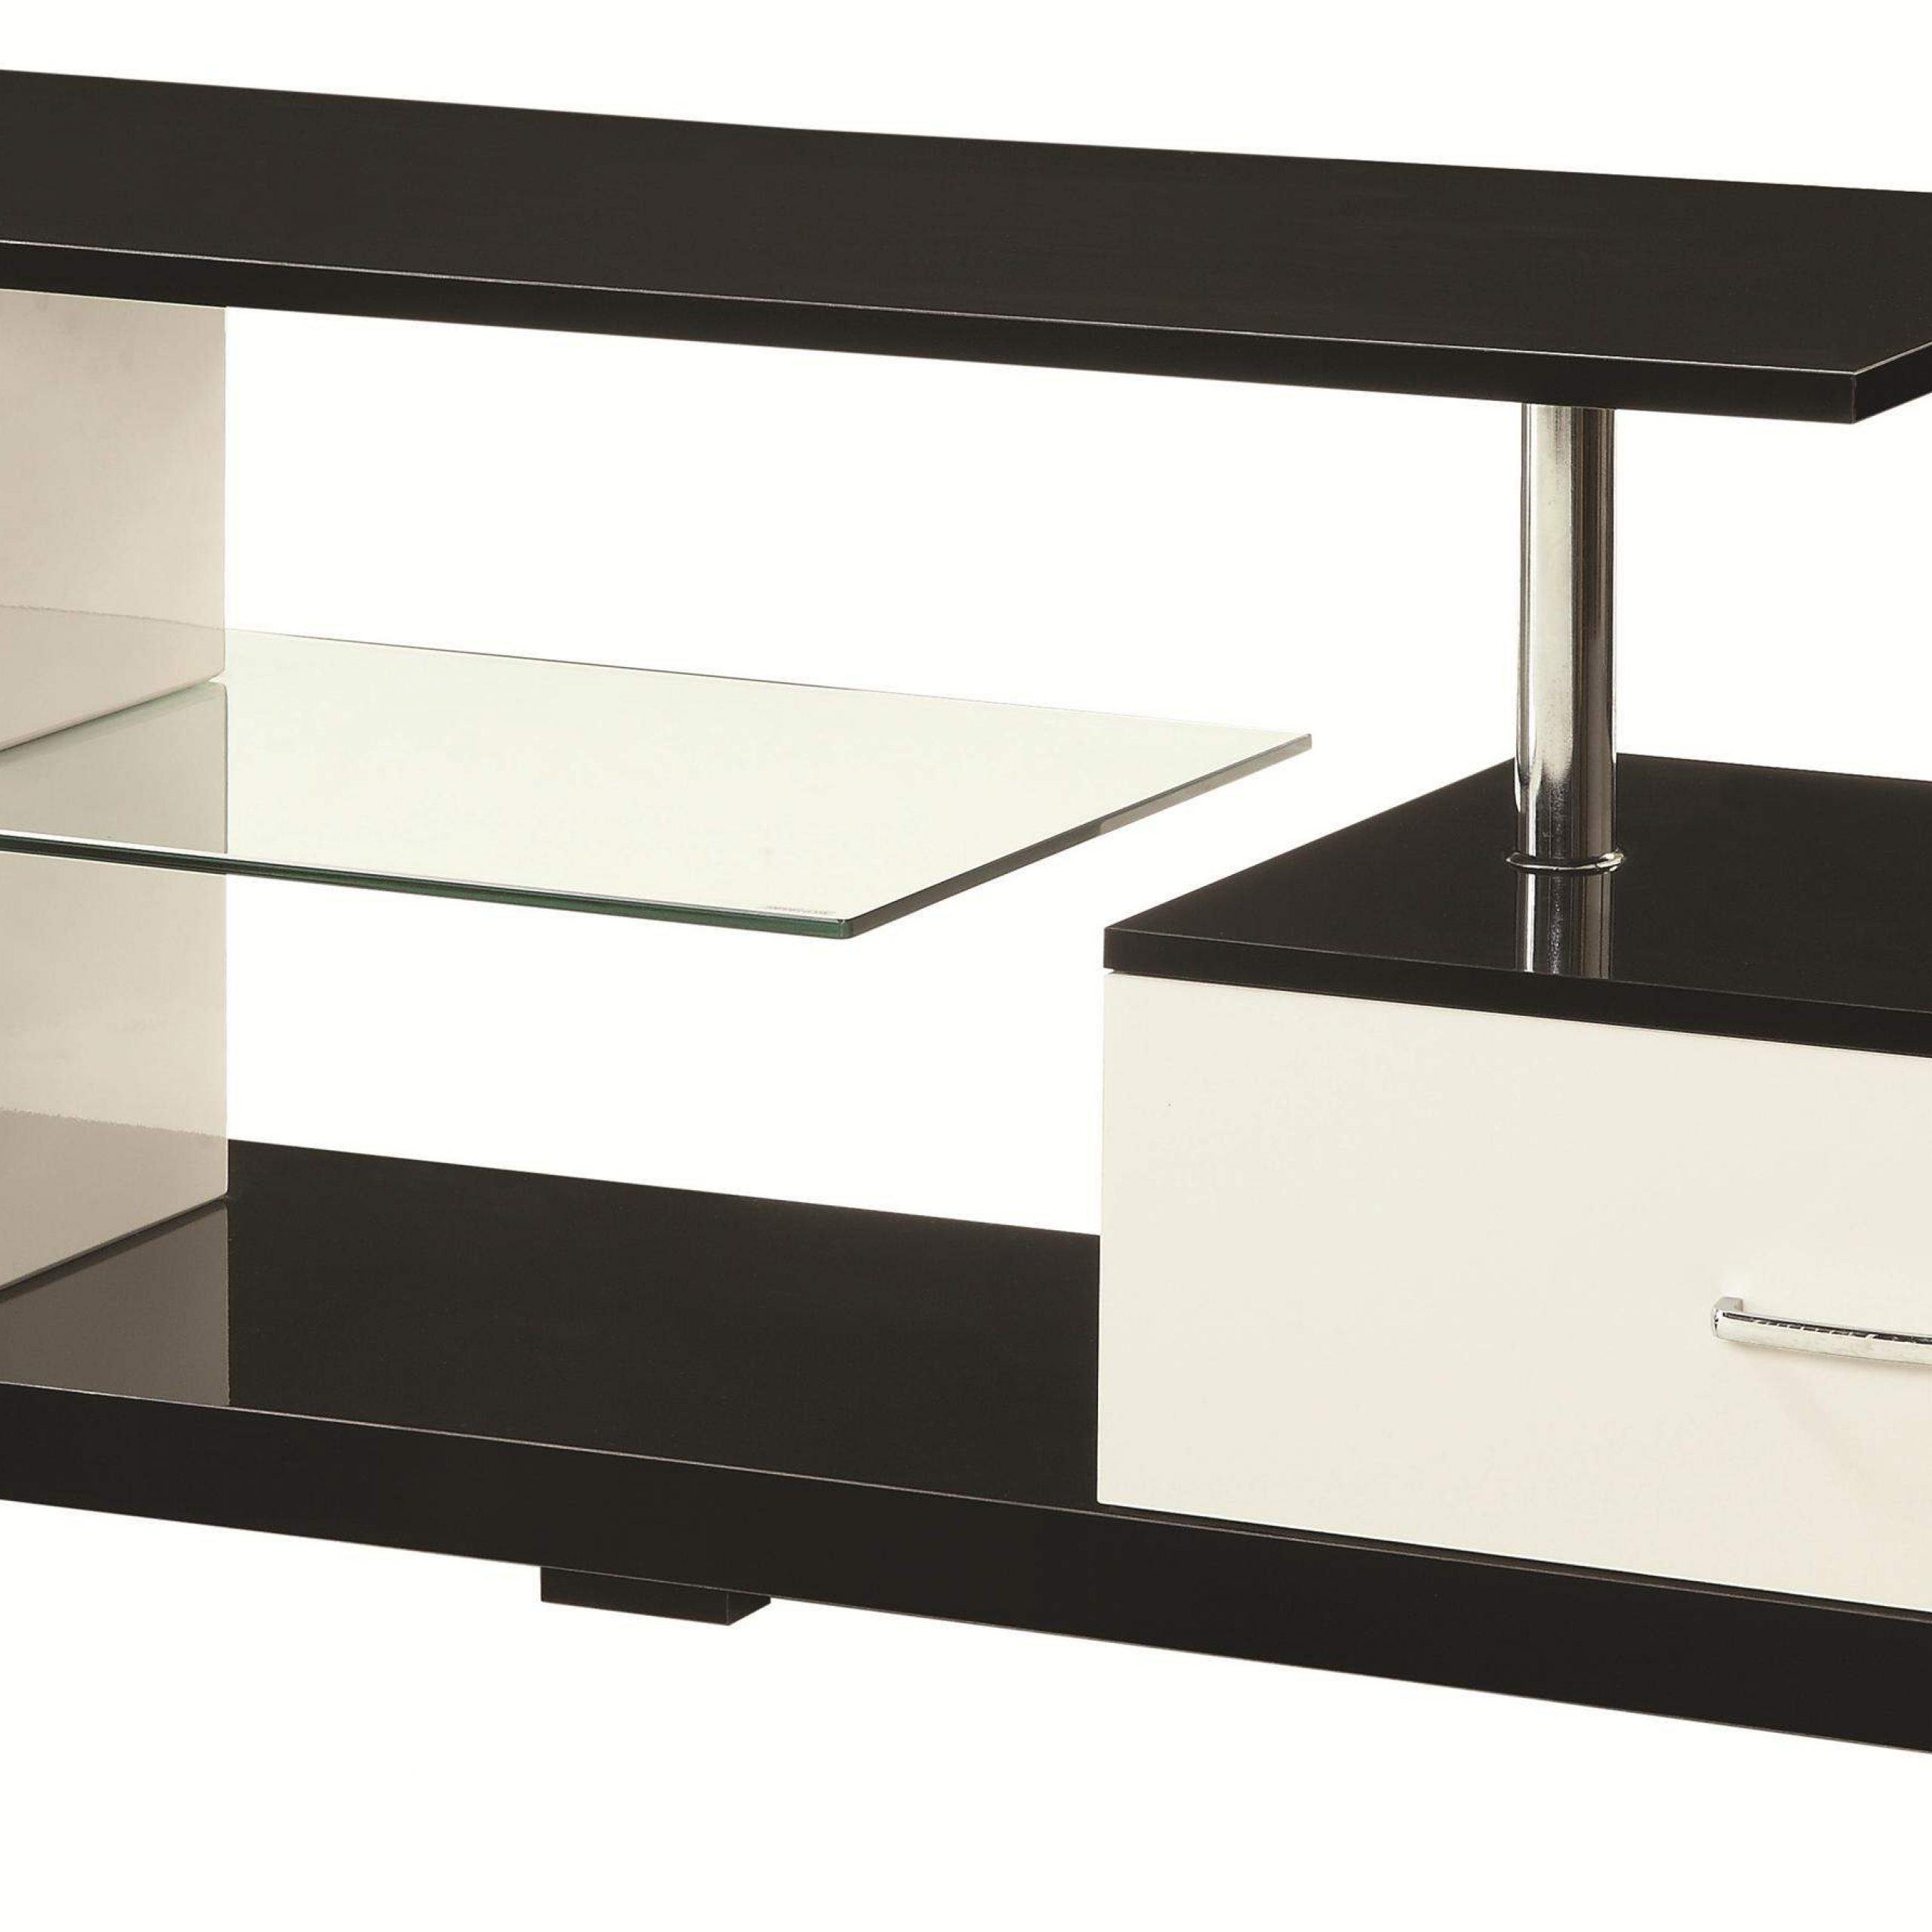 Tv Stands Black, Silver And White Tv Stand With Drawer And Within Rfiver Black Tabletop Tv Stands Glass Base (View 2 of 20)